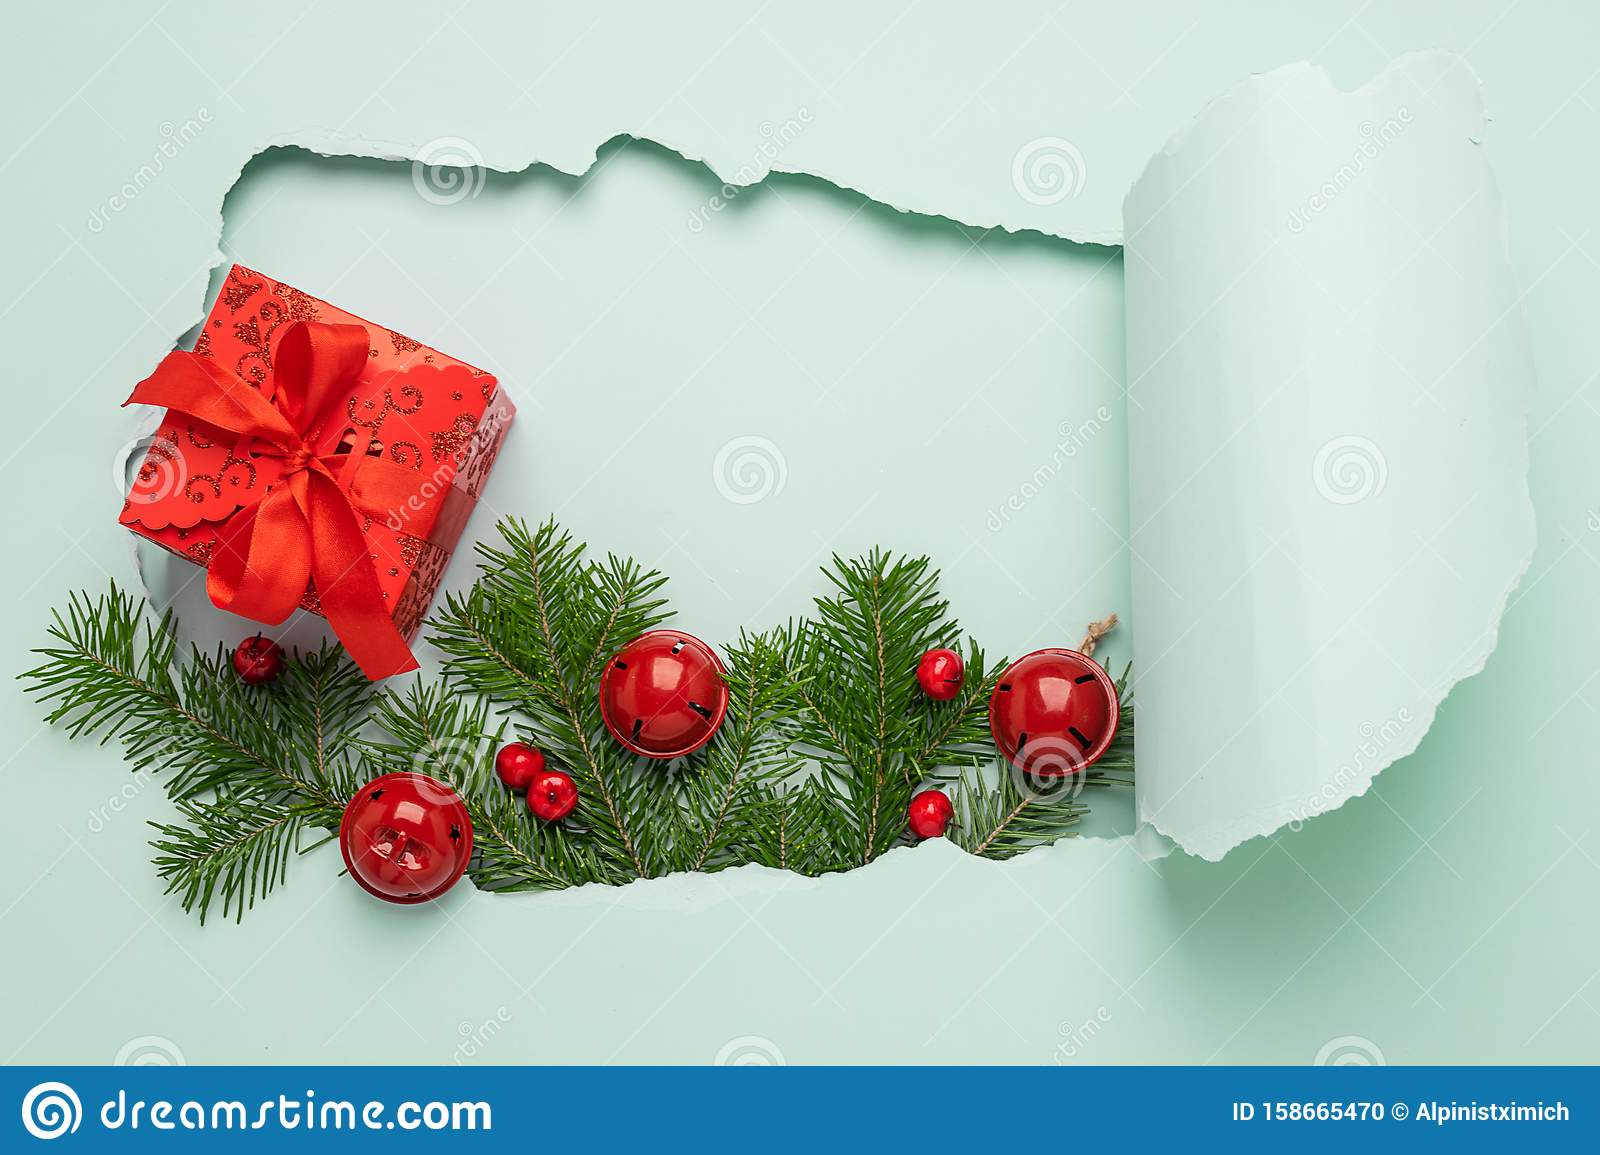 New Year Layout Hole Paper Background Mint Color Christmas Tree Toys Branches Gift With Red Bow Blue Bright Background Stock Photo Image Of Gold Background 158665470